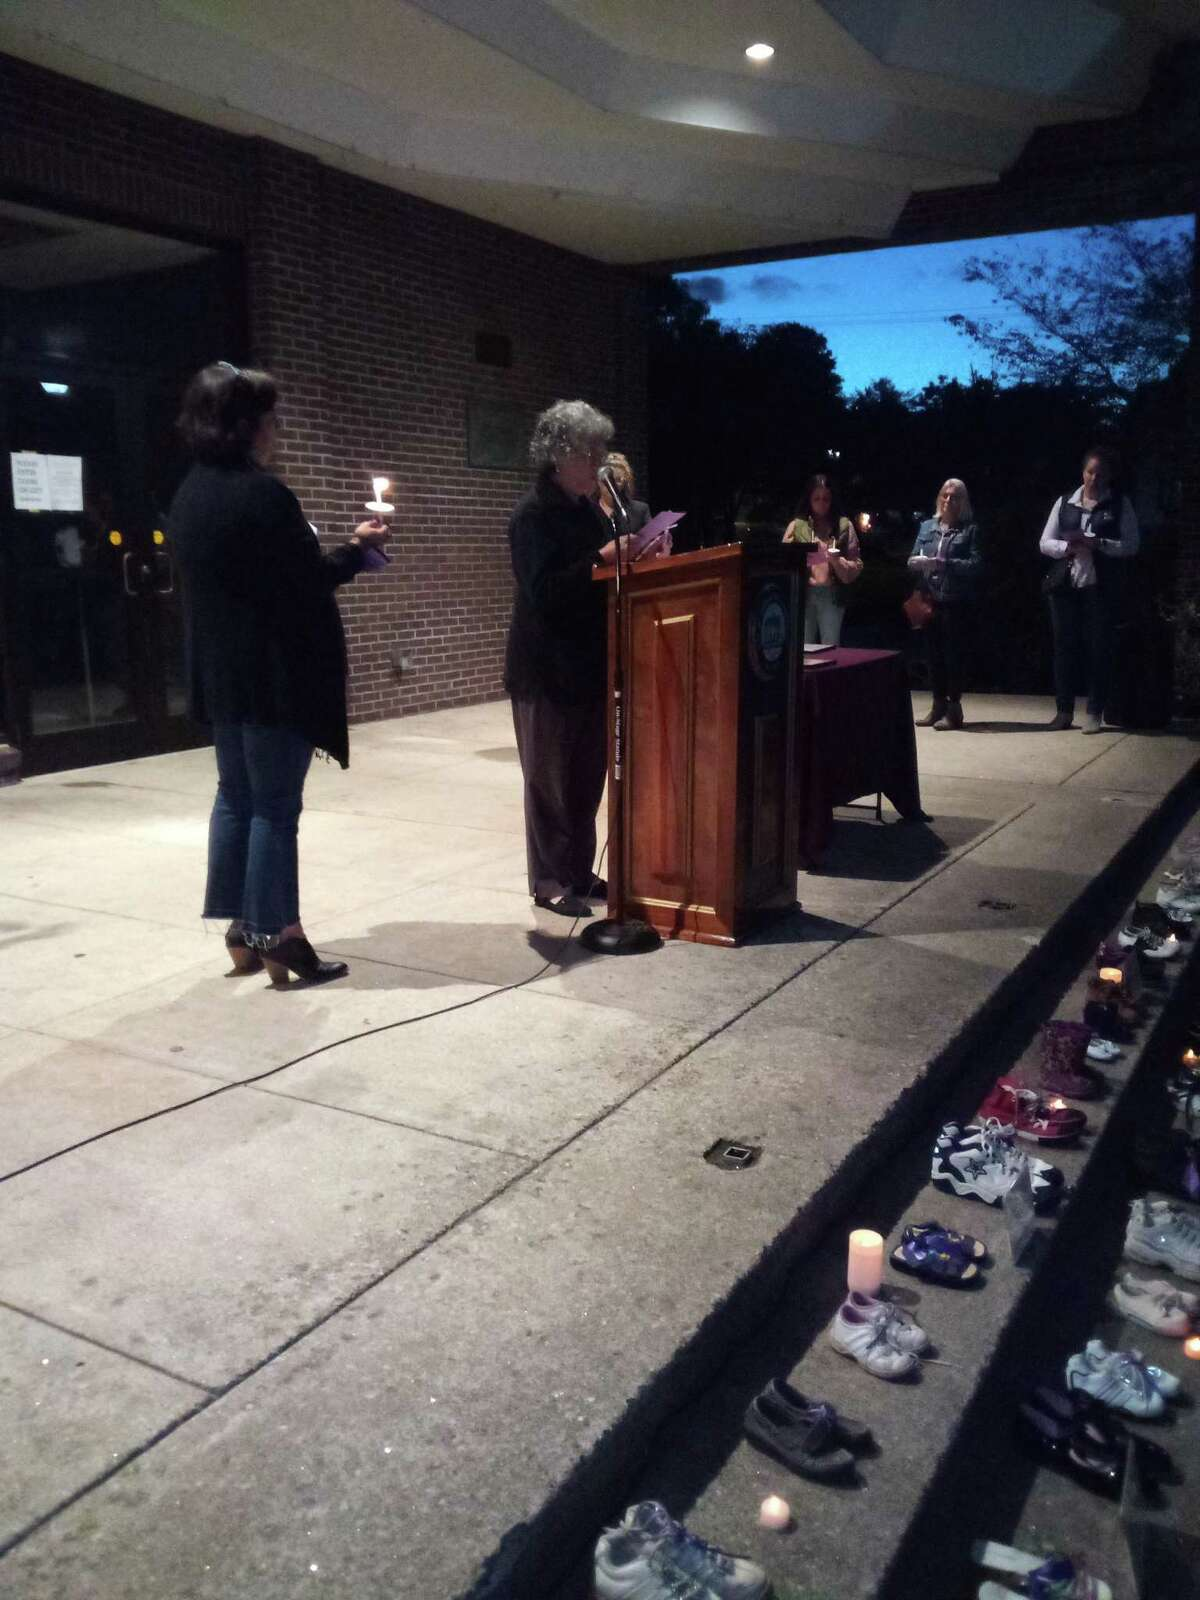 The Susan B. Anthony Project held its annual domestic violence awareness vigil Wednesday night at Coe Memorial Park.